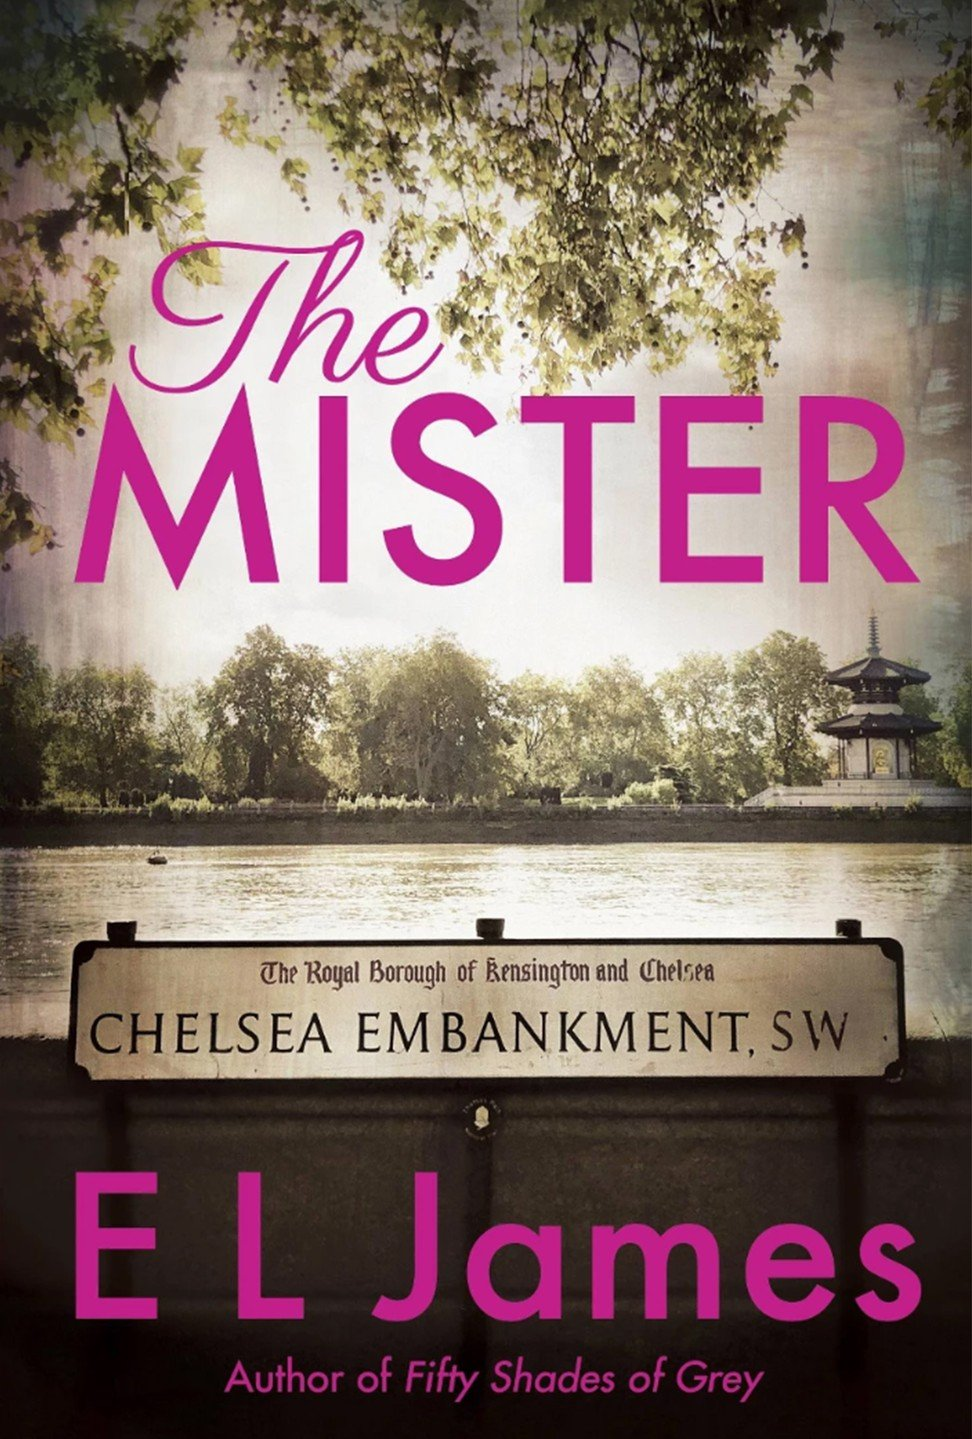 E.L. James' The Mister: absurd erotica that verges on uncomfortable